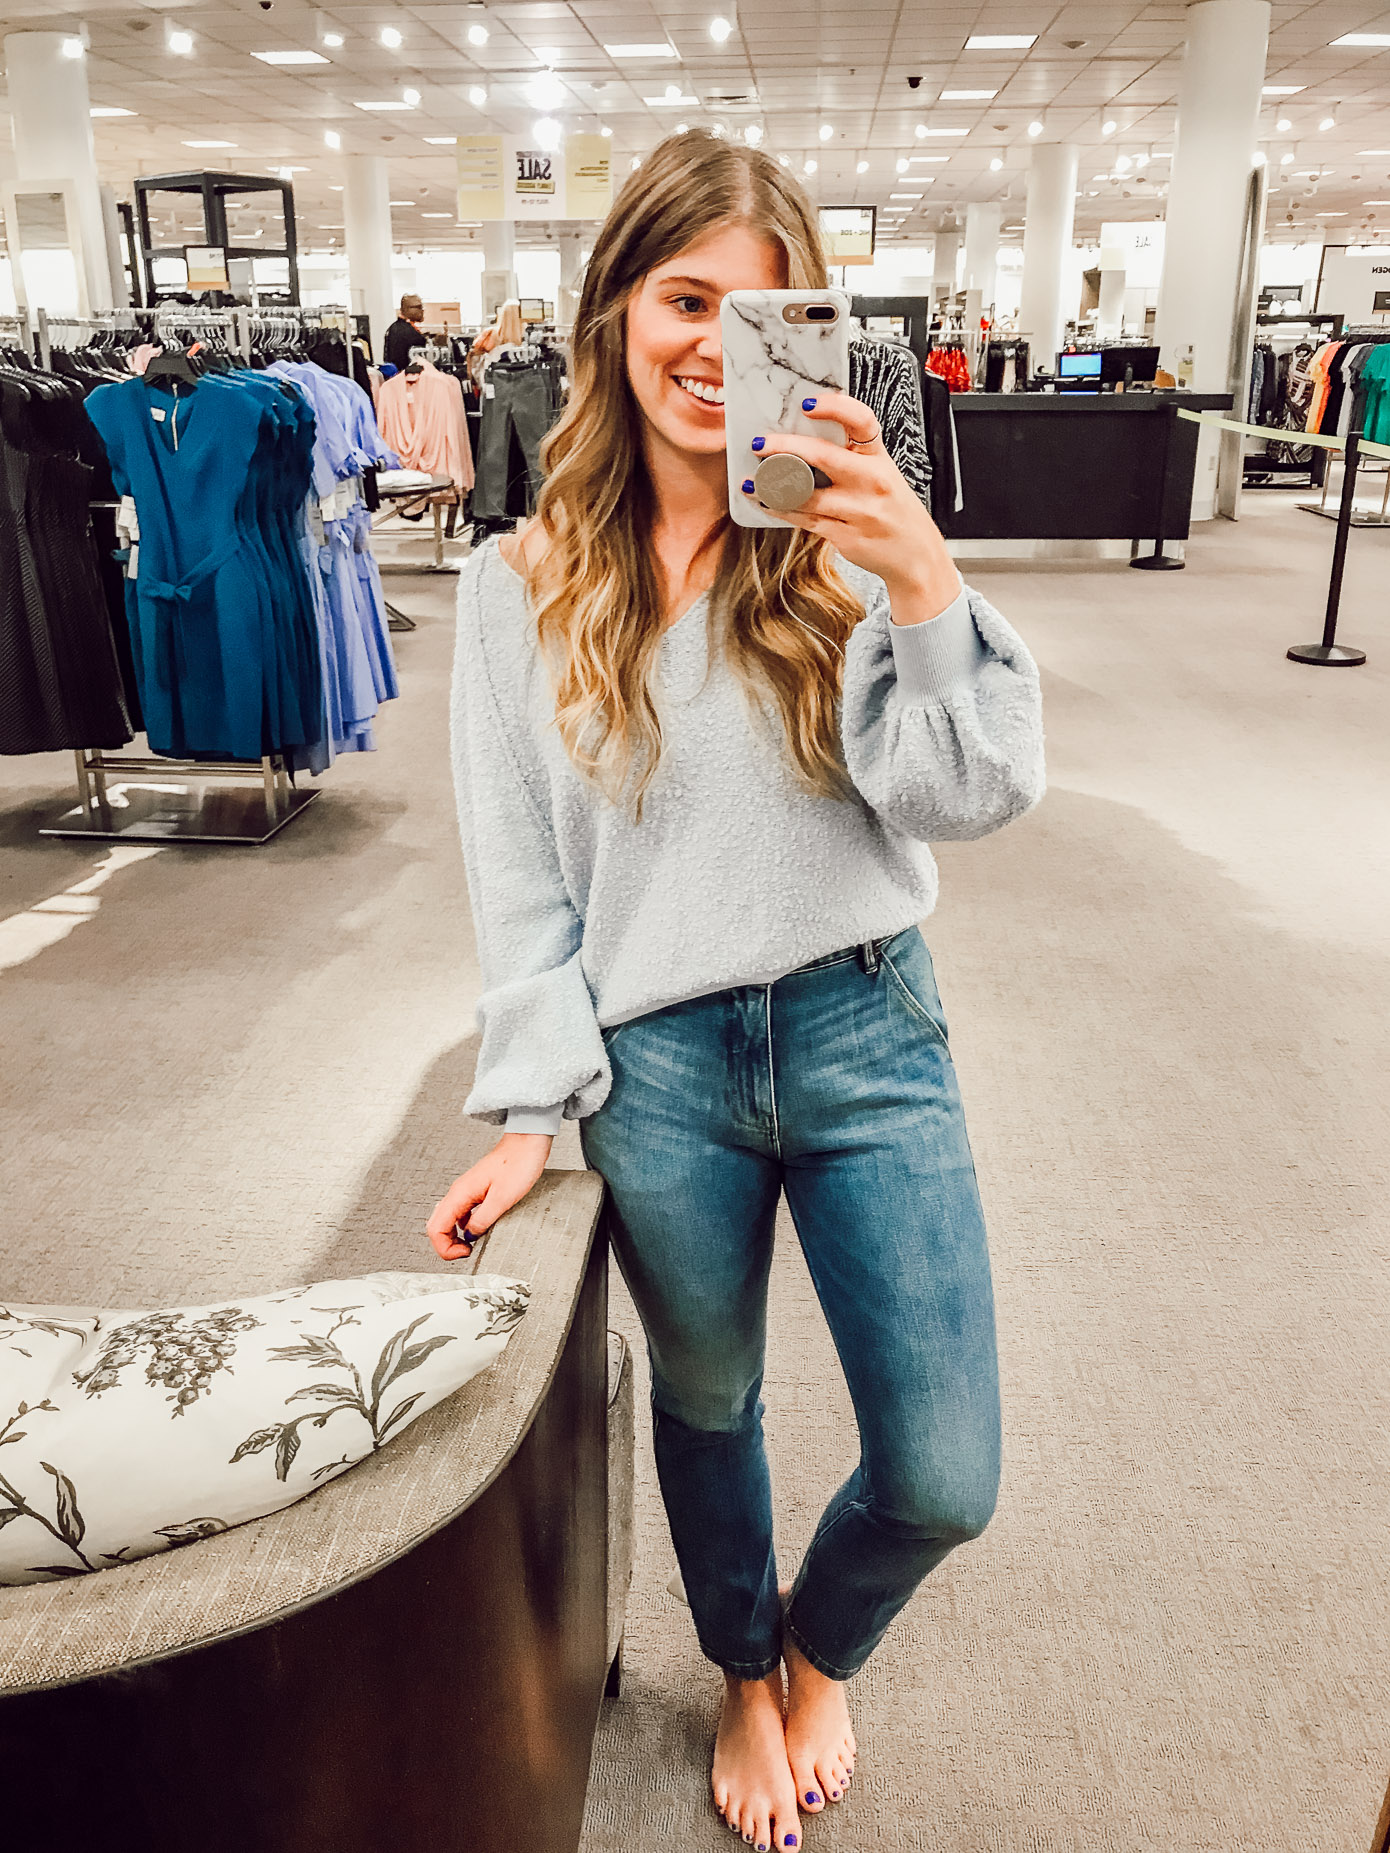 Free People Found My Friend Sweater | 2018 Nordstrom Anniversary Fitting Room Session featured on Louella Reese Life & Style Blog